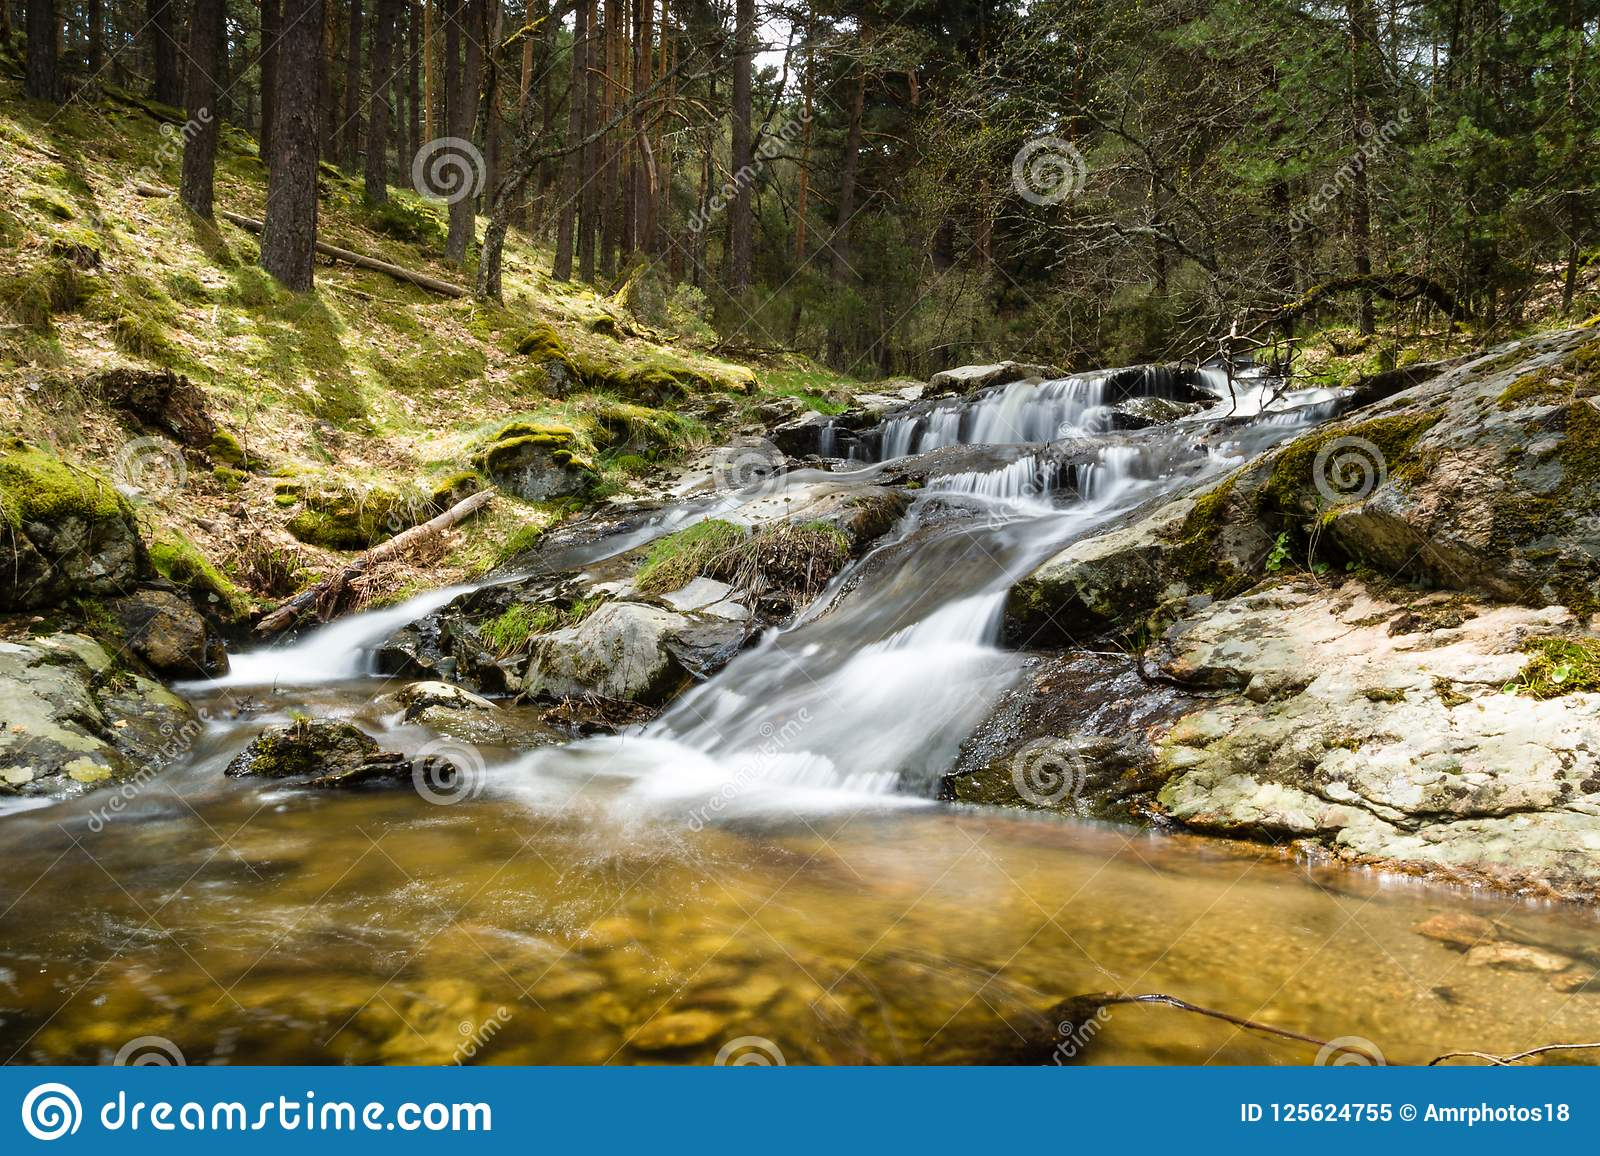 Slow motion waterfall in a beautiful pine trees forest in Mojonavalle, Canencia, Madrid.